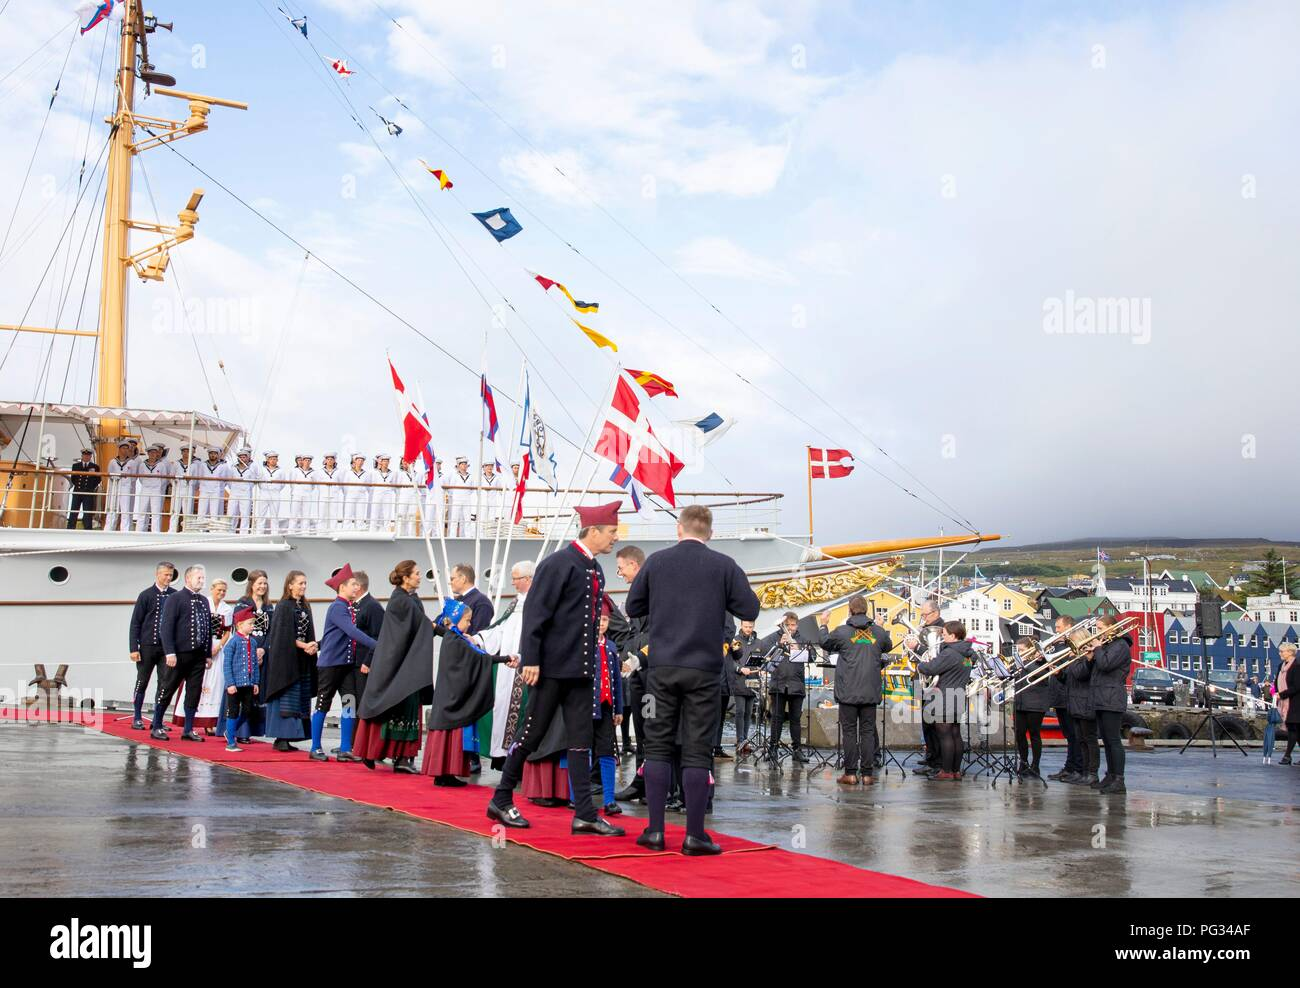 Torshavn, Faroe Islands, Denmark. 23rd Aug, 2018. Crown Prince Frederik, Crown Princess Mary, Prince Christian, Princess Isabella, Prince Vincent and Princess Josehpine of Denmark arrive with the The Royal Ship, HDMY Dannebrog at Bursatangi, on August 23, 2018, on the 1st of the 4 days visit to the Faroe Islands Photo : Albert Nieboer/ Netherlands OUT/Point de Vue OUT | Credit: dpa/Alamy Live News - Stock Image